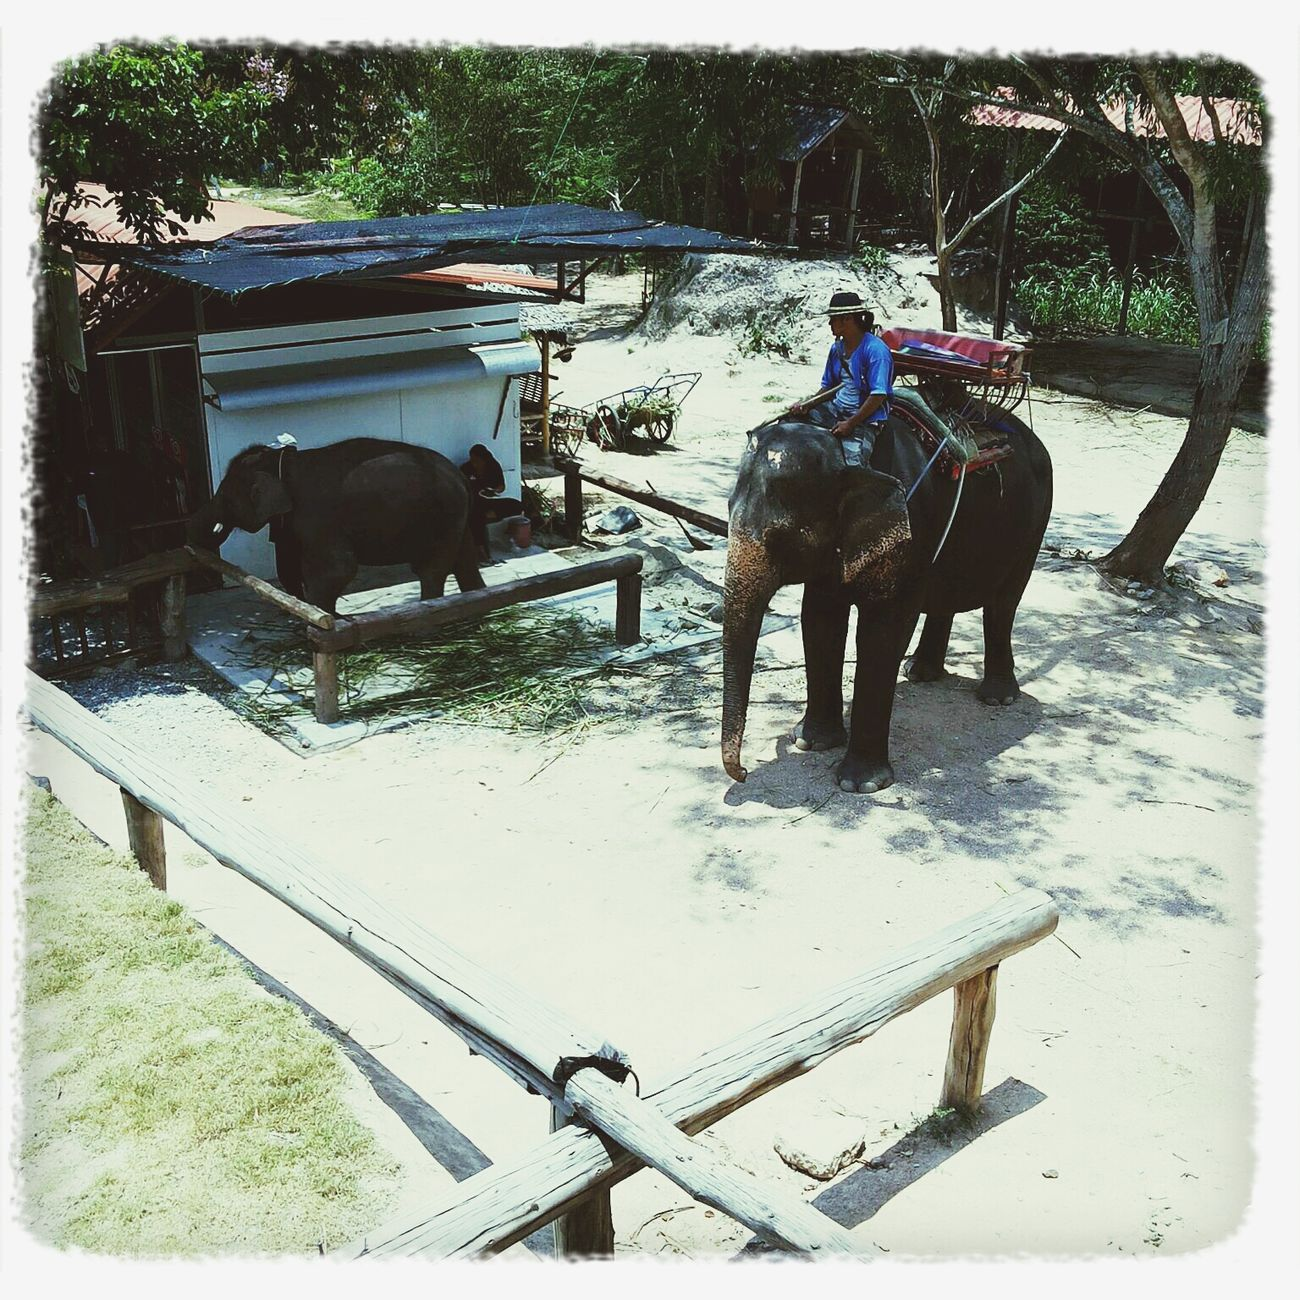 A day with friendly elephant. Vacation